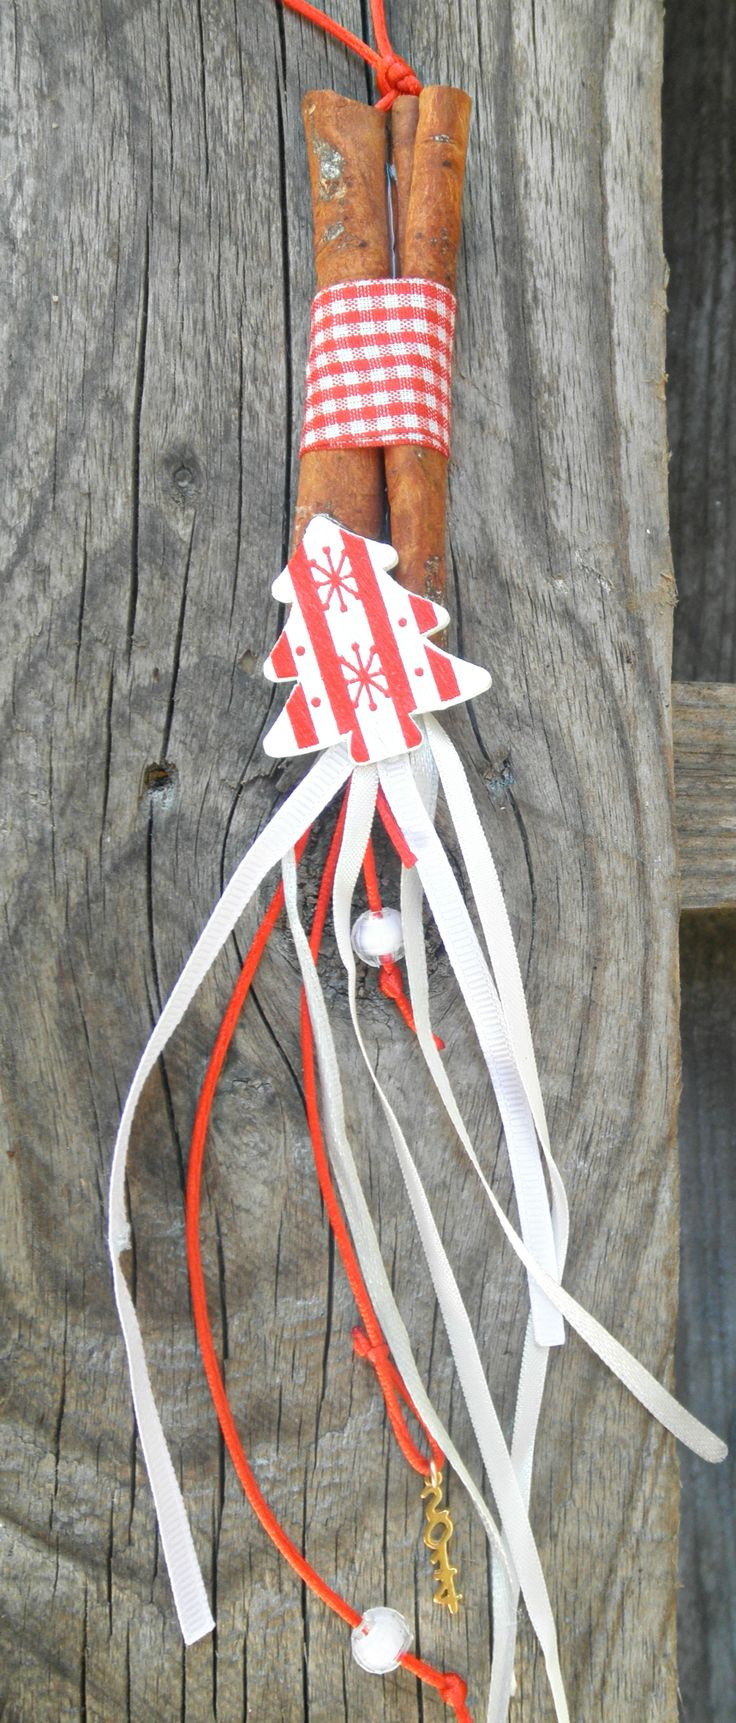 charm with cinnamons,ribbons,wooden tree,beads